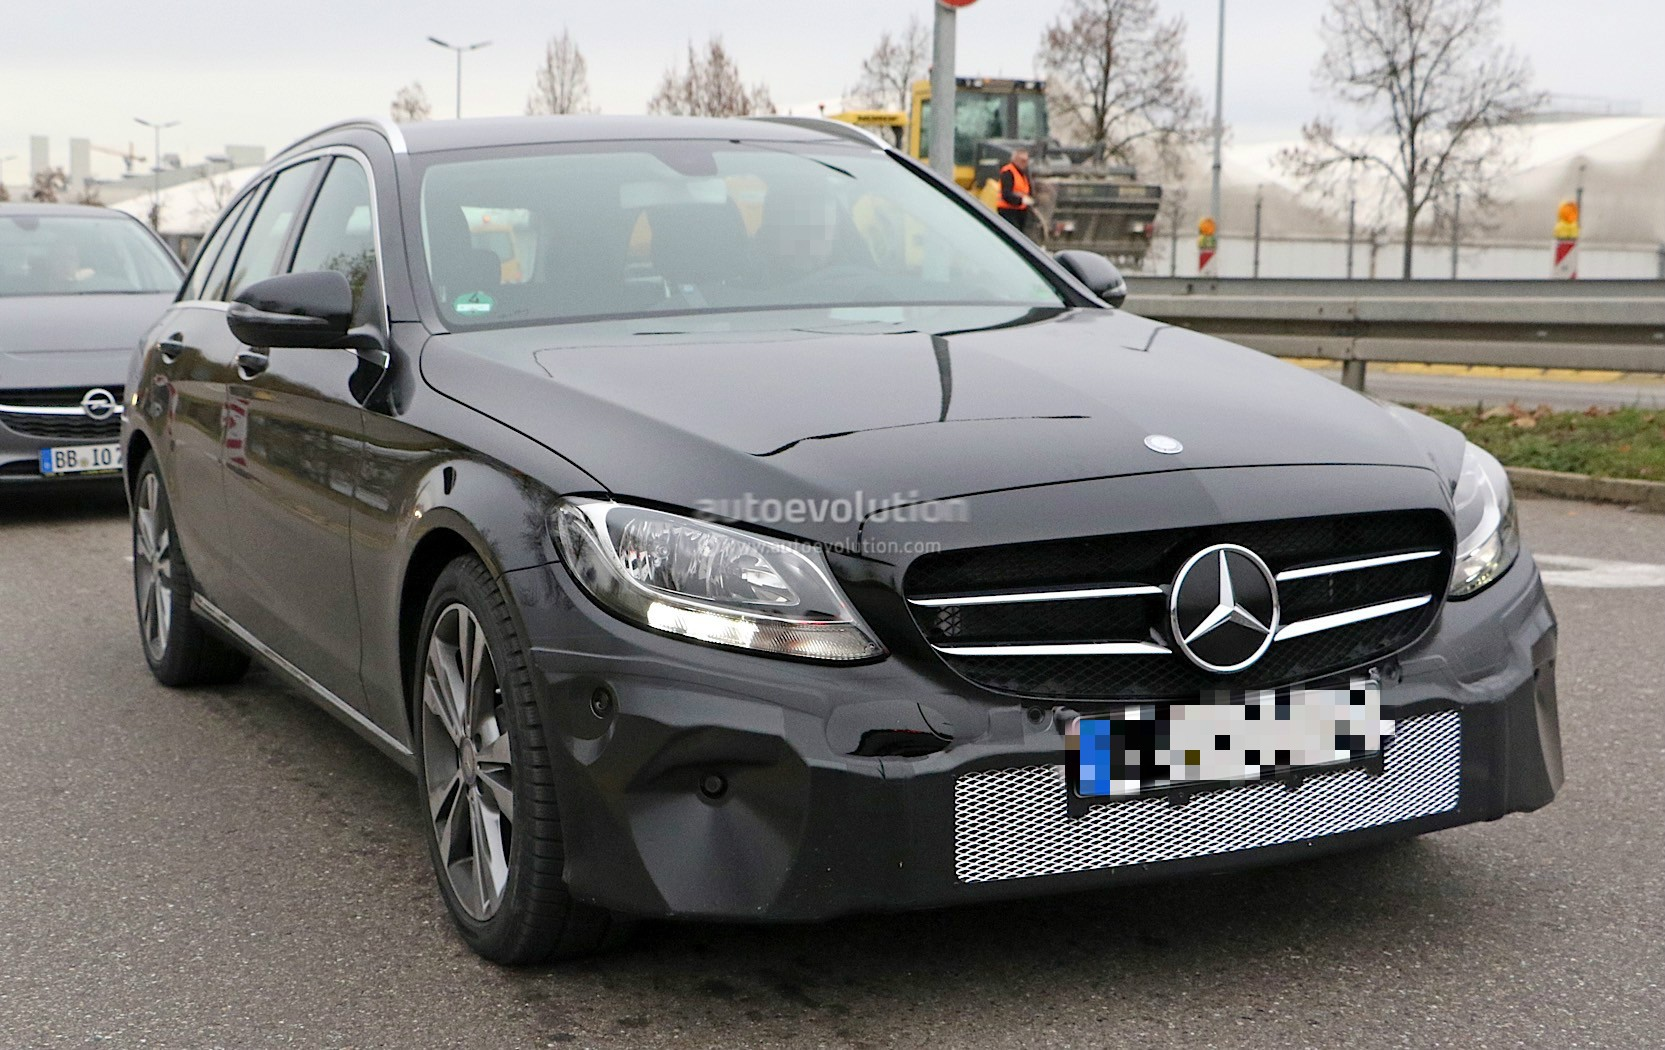 2018 mercedes benz c class facelift shows interior for the for Benz mercedes c class